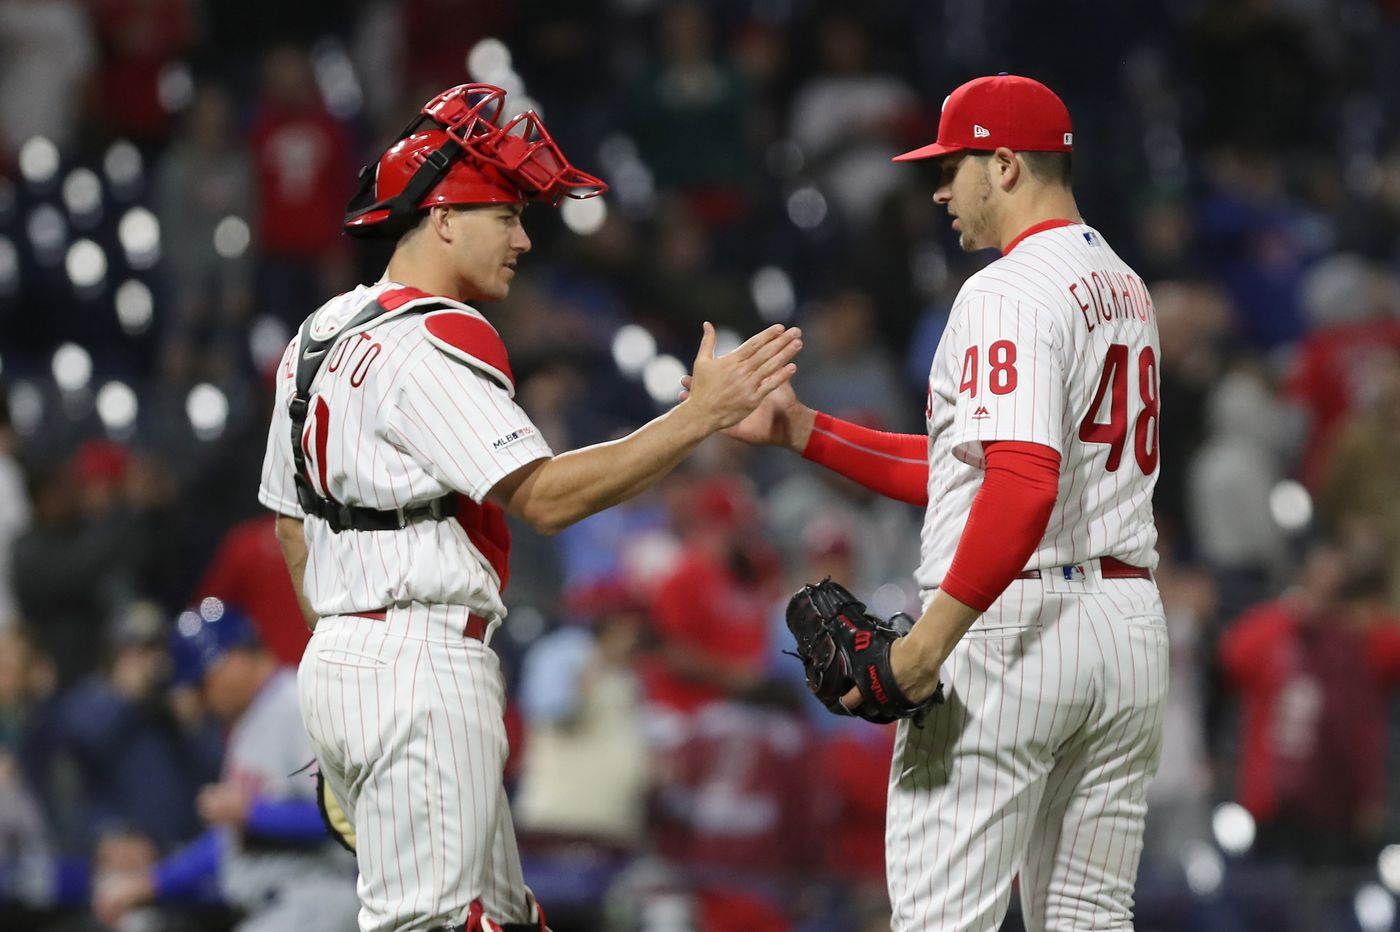 Phillies want pitchers to follow J.T. Realmuto's lead | Extra Innings